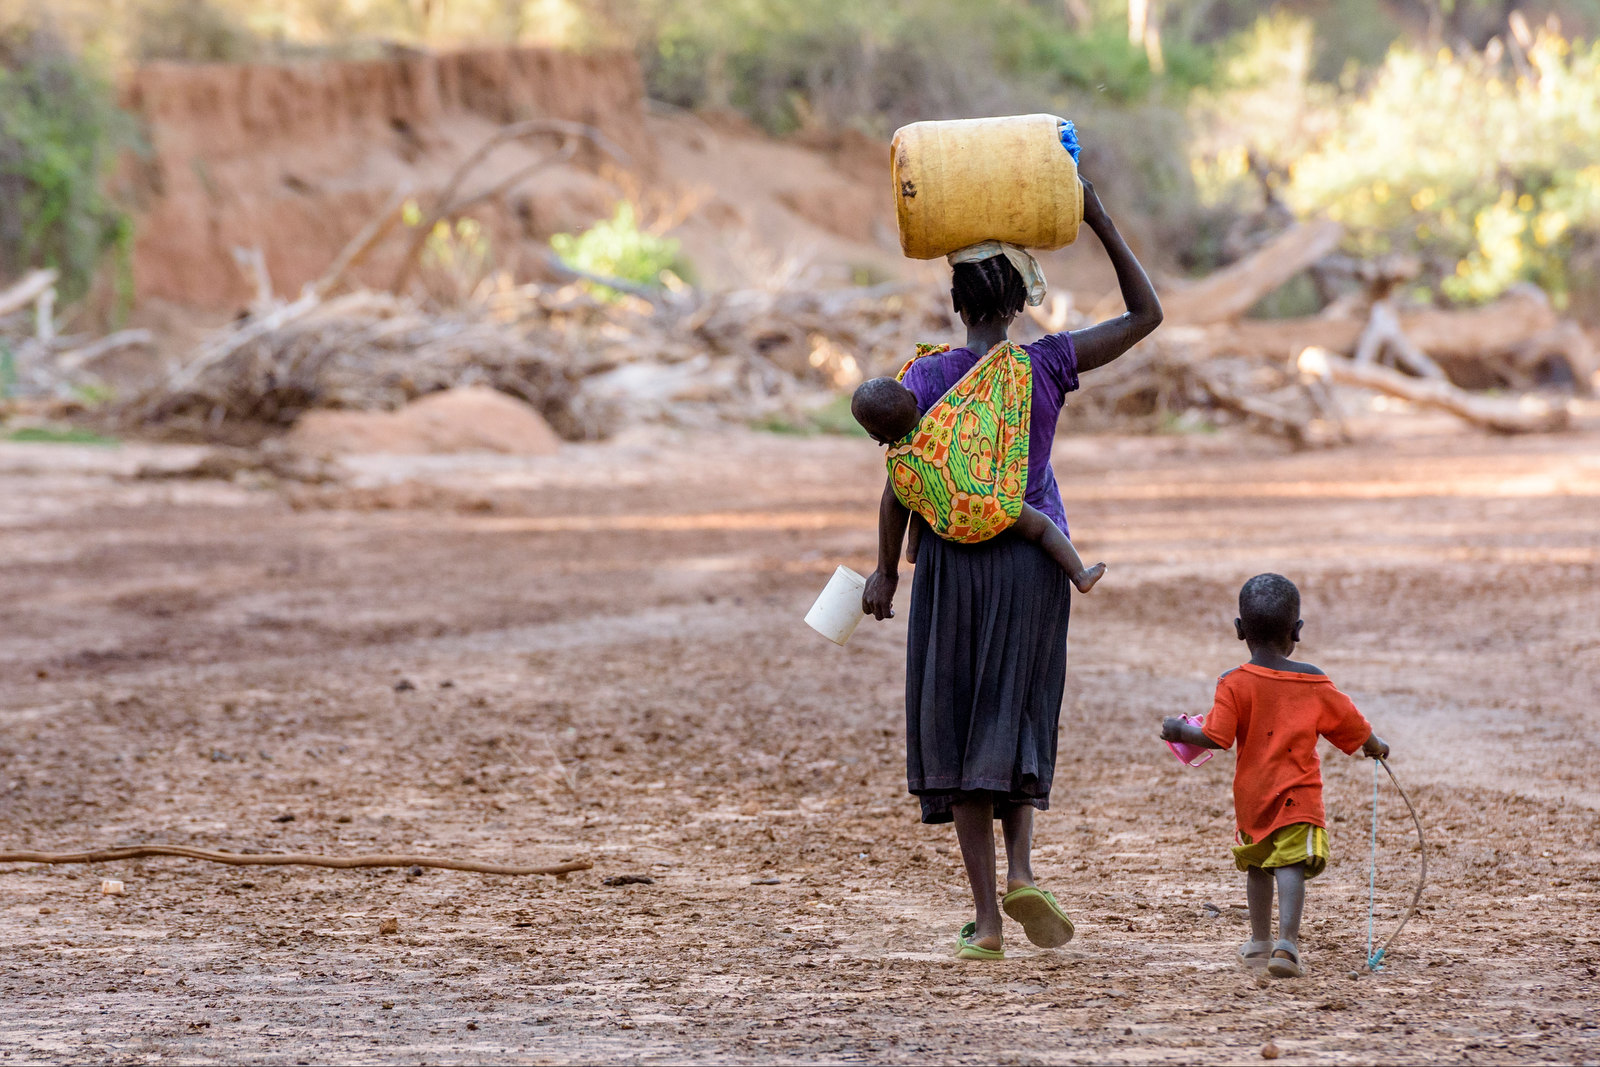 With her baby on her back and toddler by her side, Monica Lotuliapus walks in a dry riverbed in Kenya to dig for water at least twice a day, a distance of about 8K (4 miles).